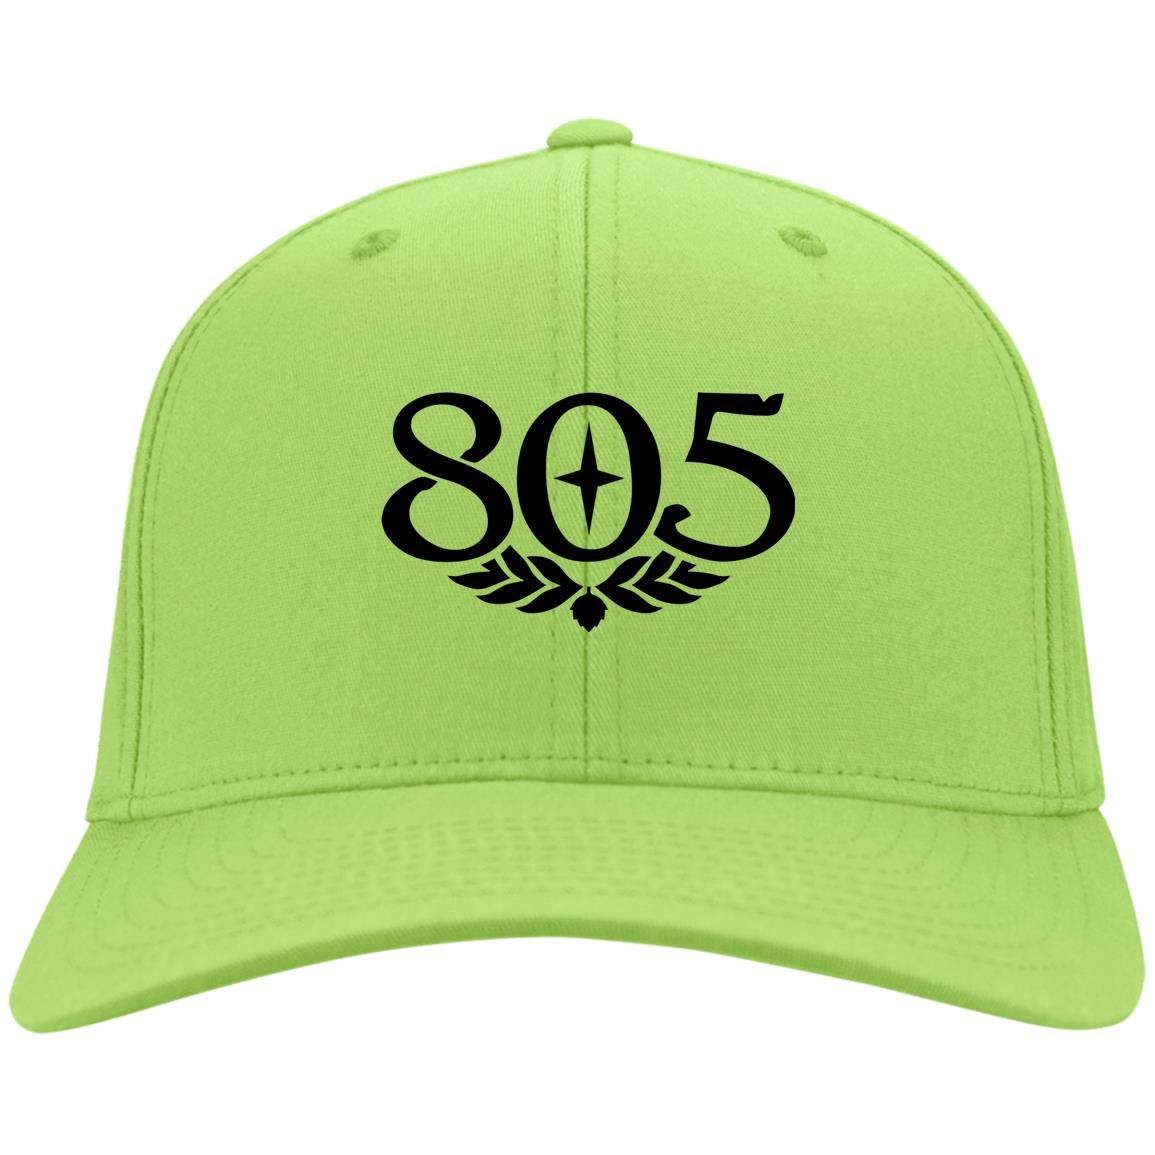 805 Beer Black - Port & Co. Twill Cap Lime